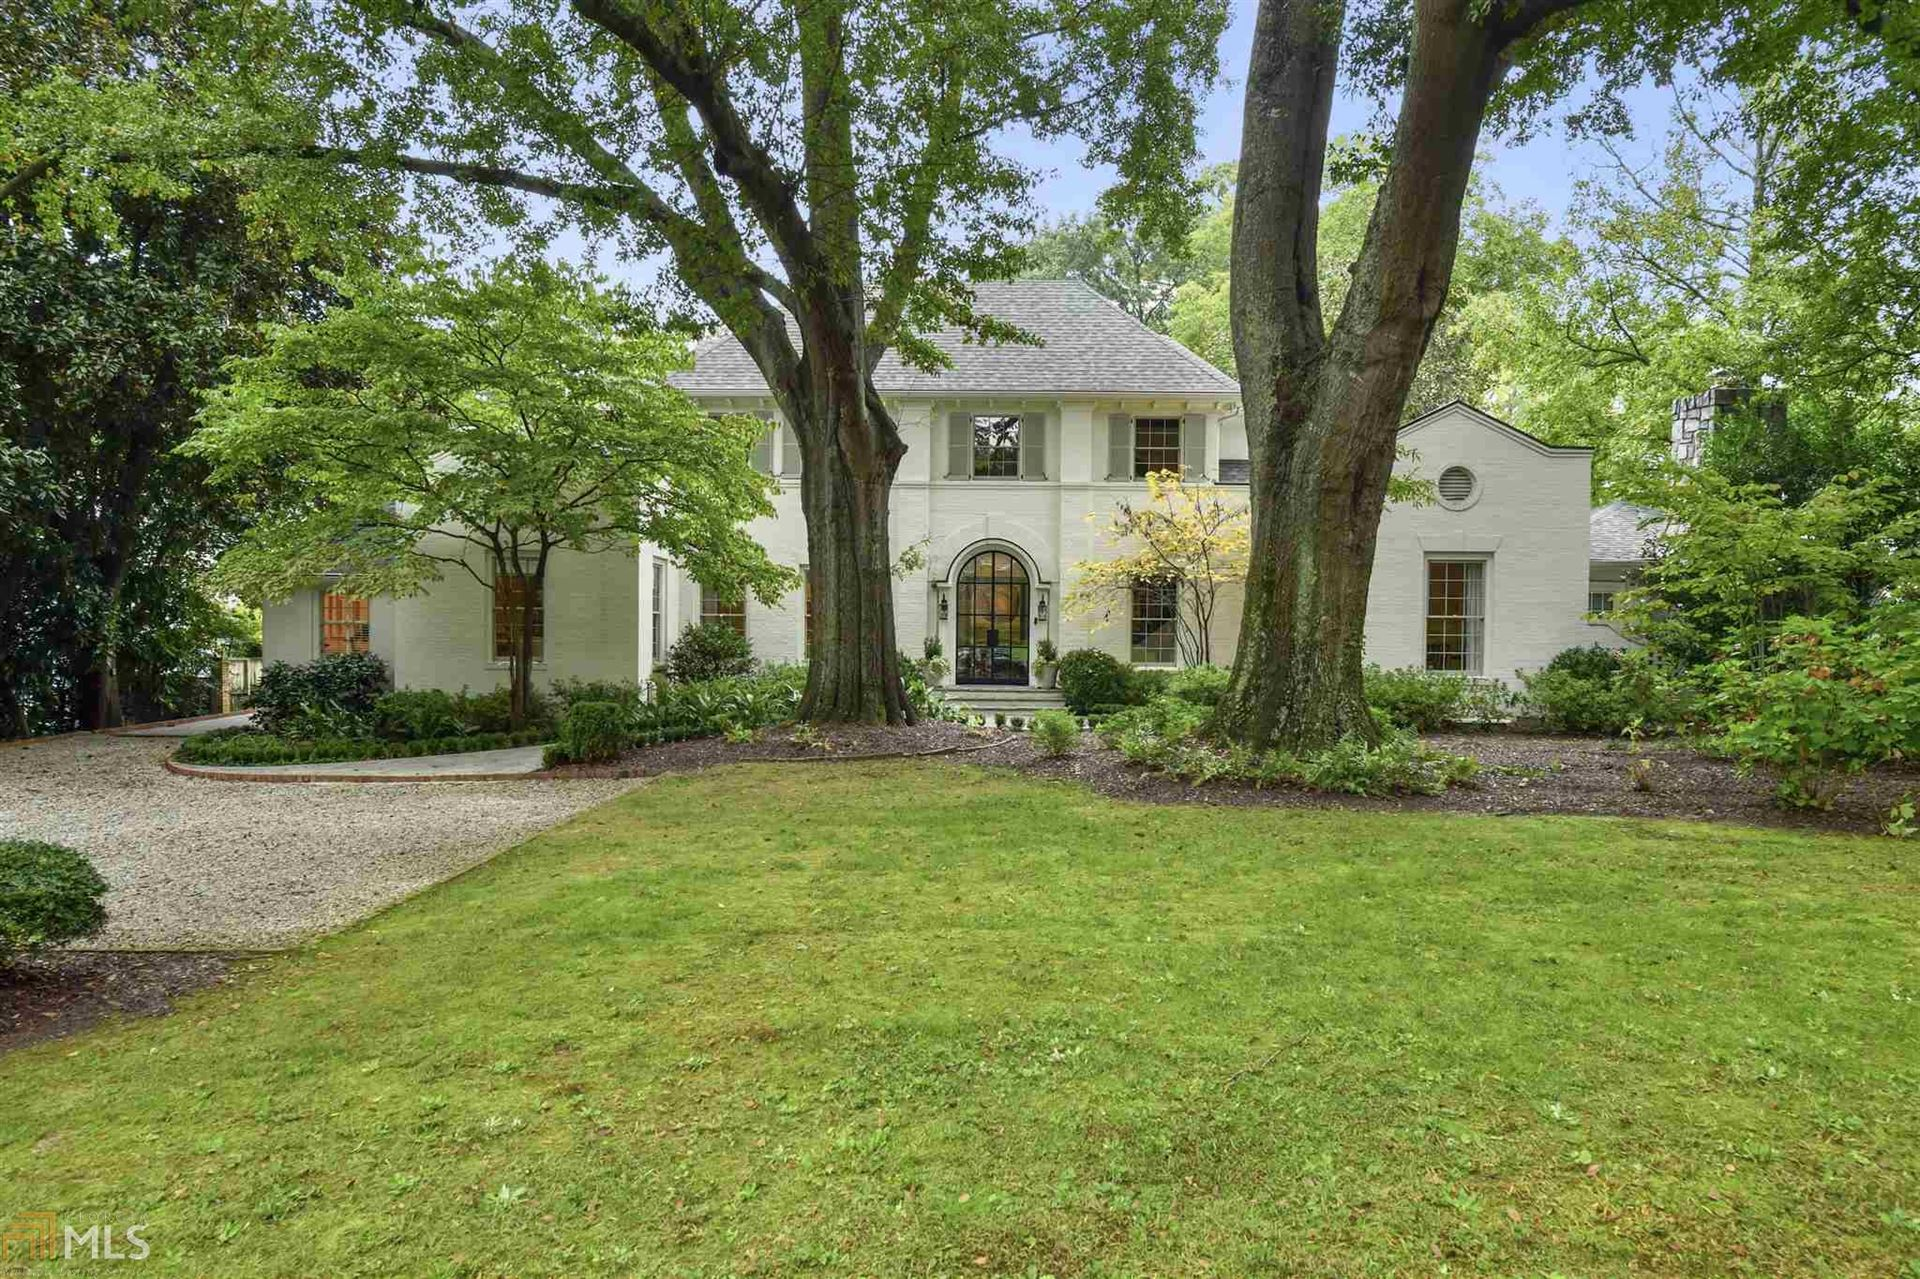 3765 Club Dr, Atlanta, GA 30319 - MLS#: 8876692